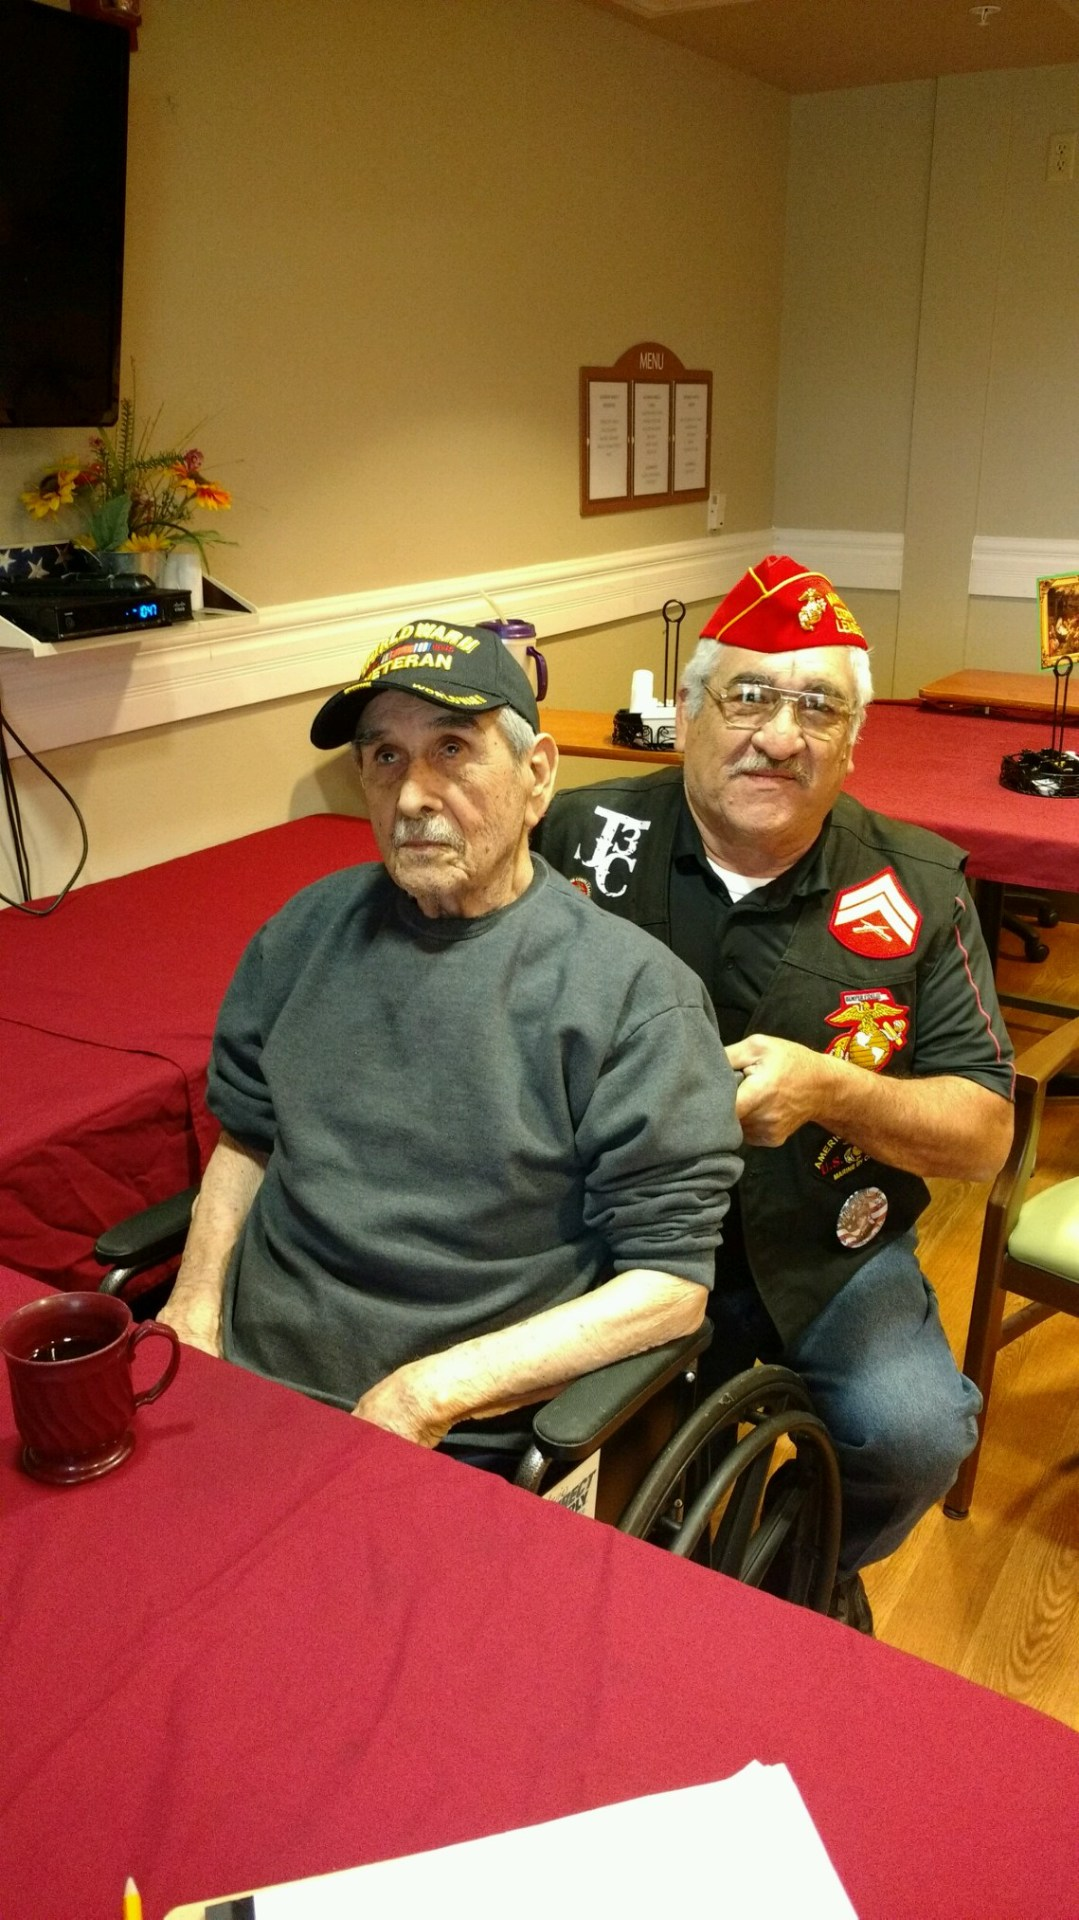 Lt-Rt; US Army (WWII) Veteran, Jose Narvaez